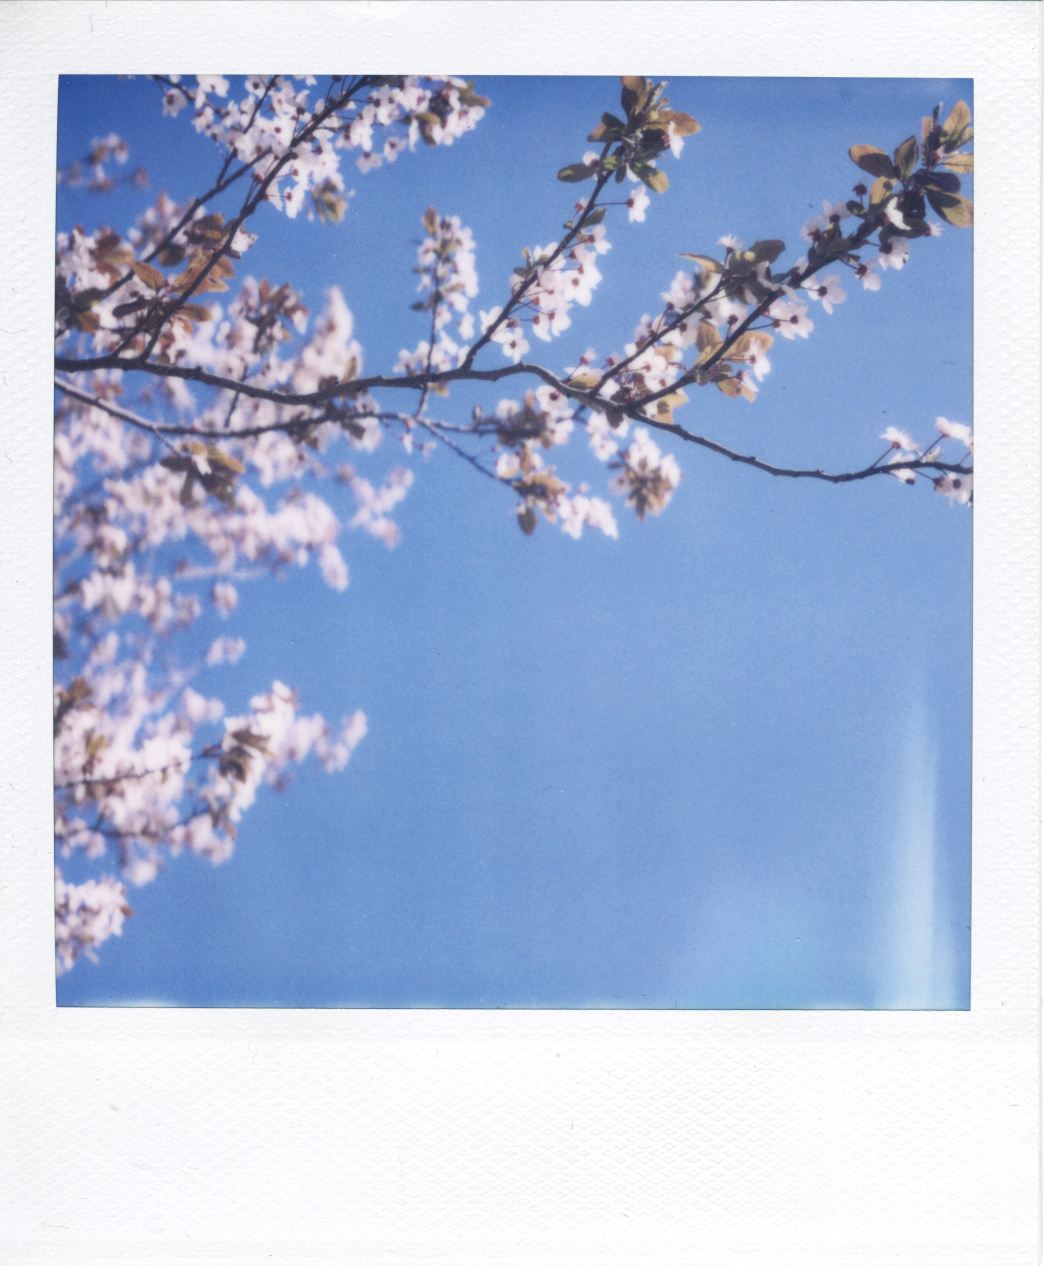 sx-70 film. beautiful blues.